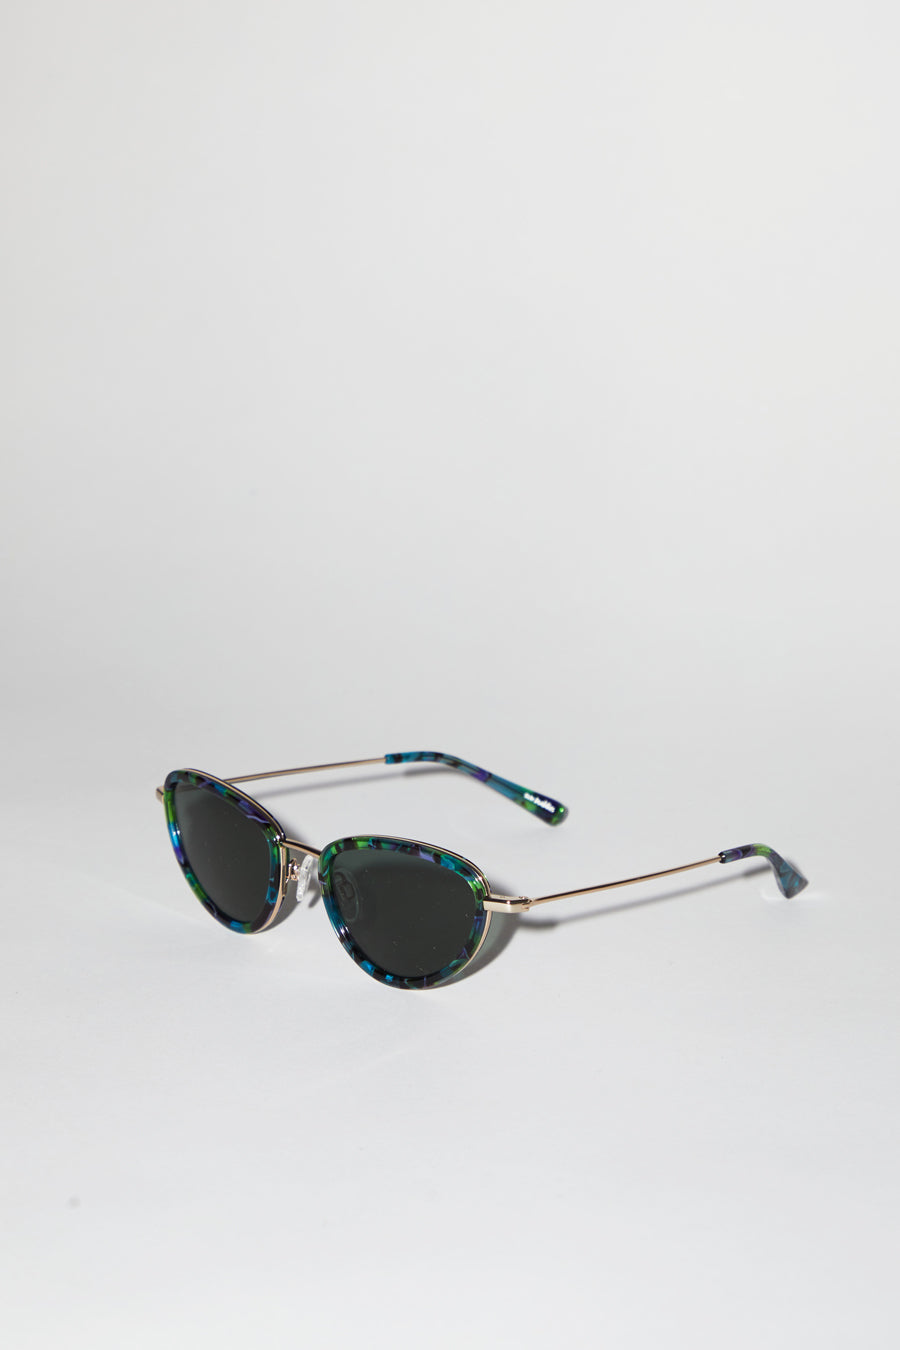 Sun Buddies Left Eye Sunglasses in Gold and Aurora Borealis